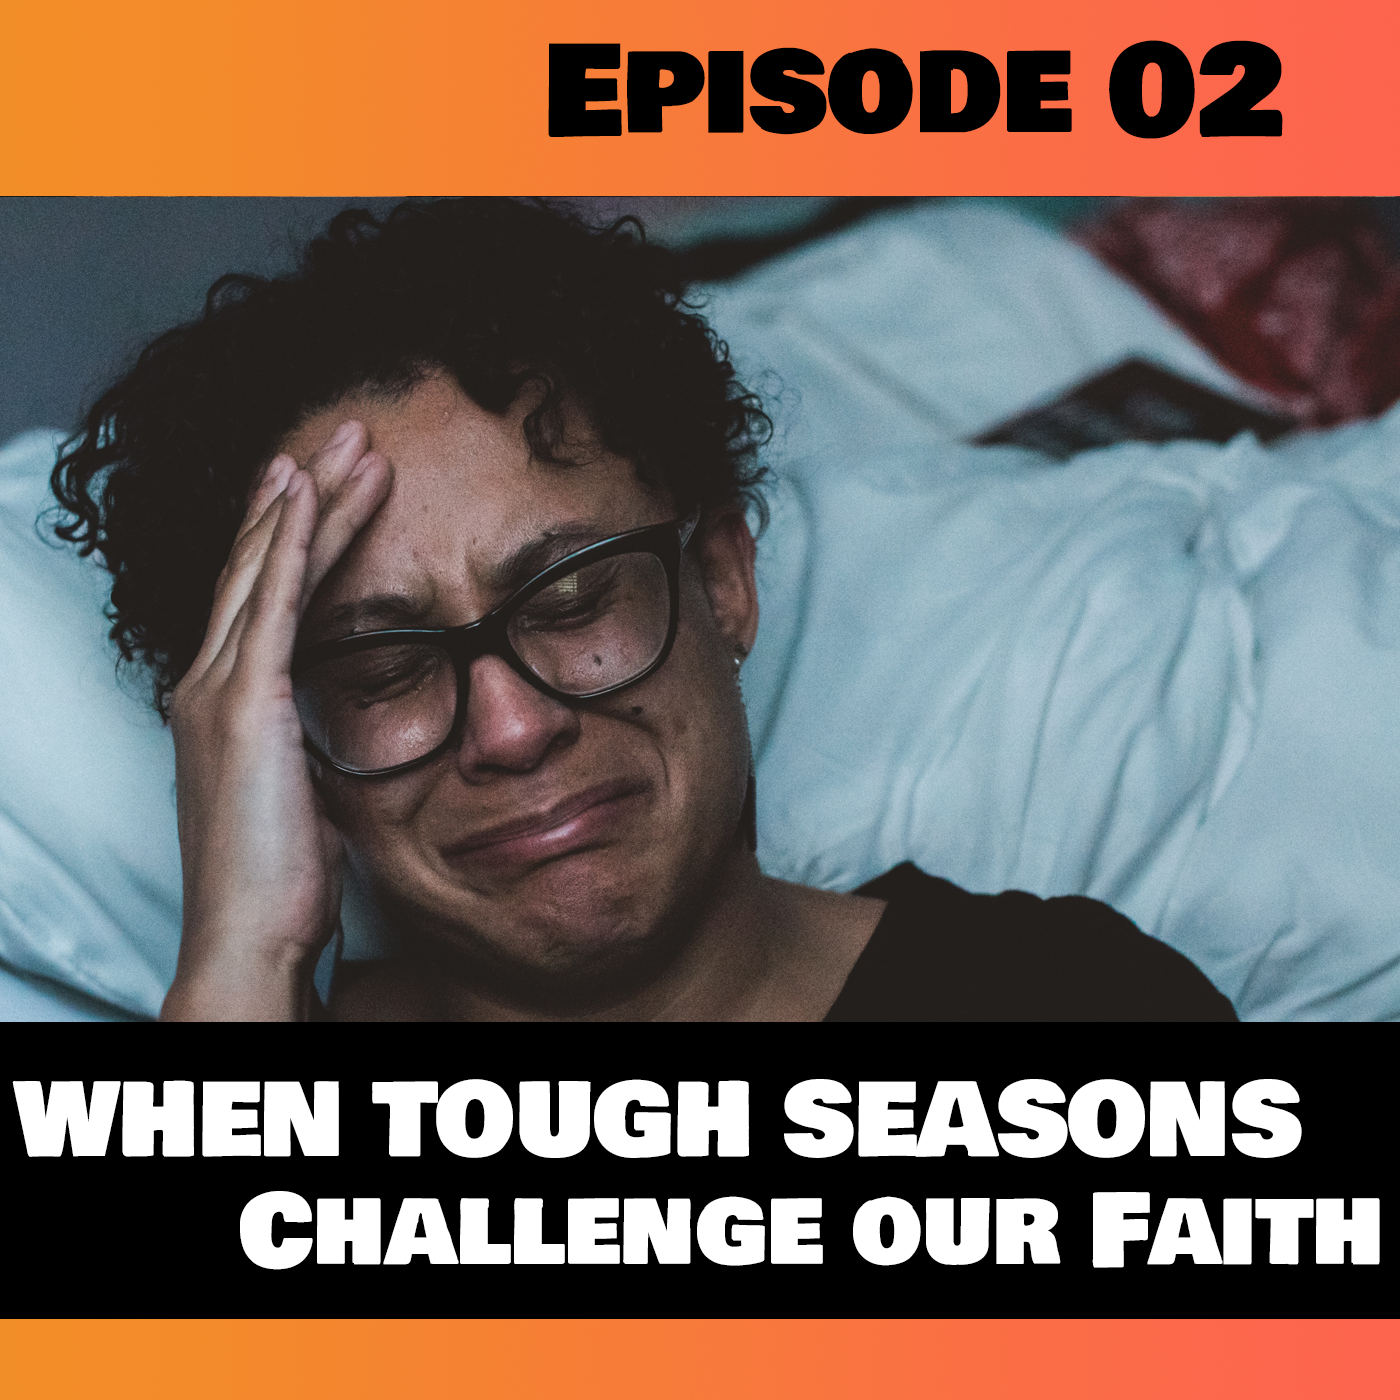 Seasons That Challenge Our Faith